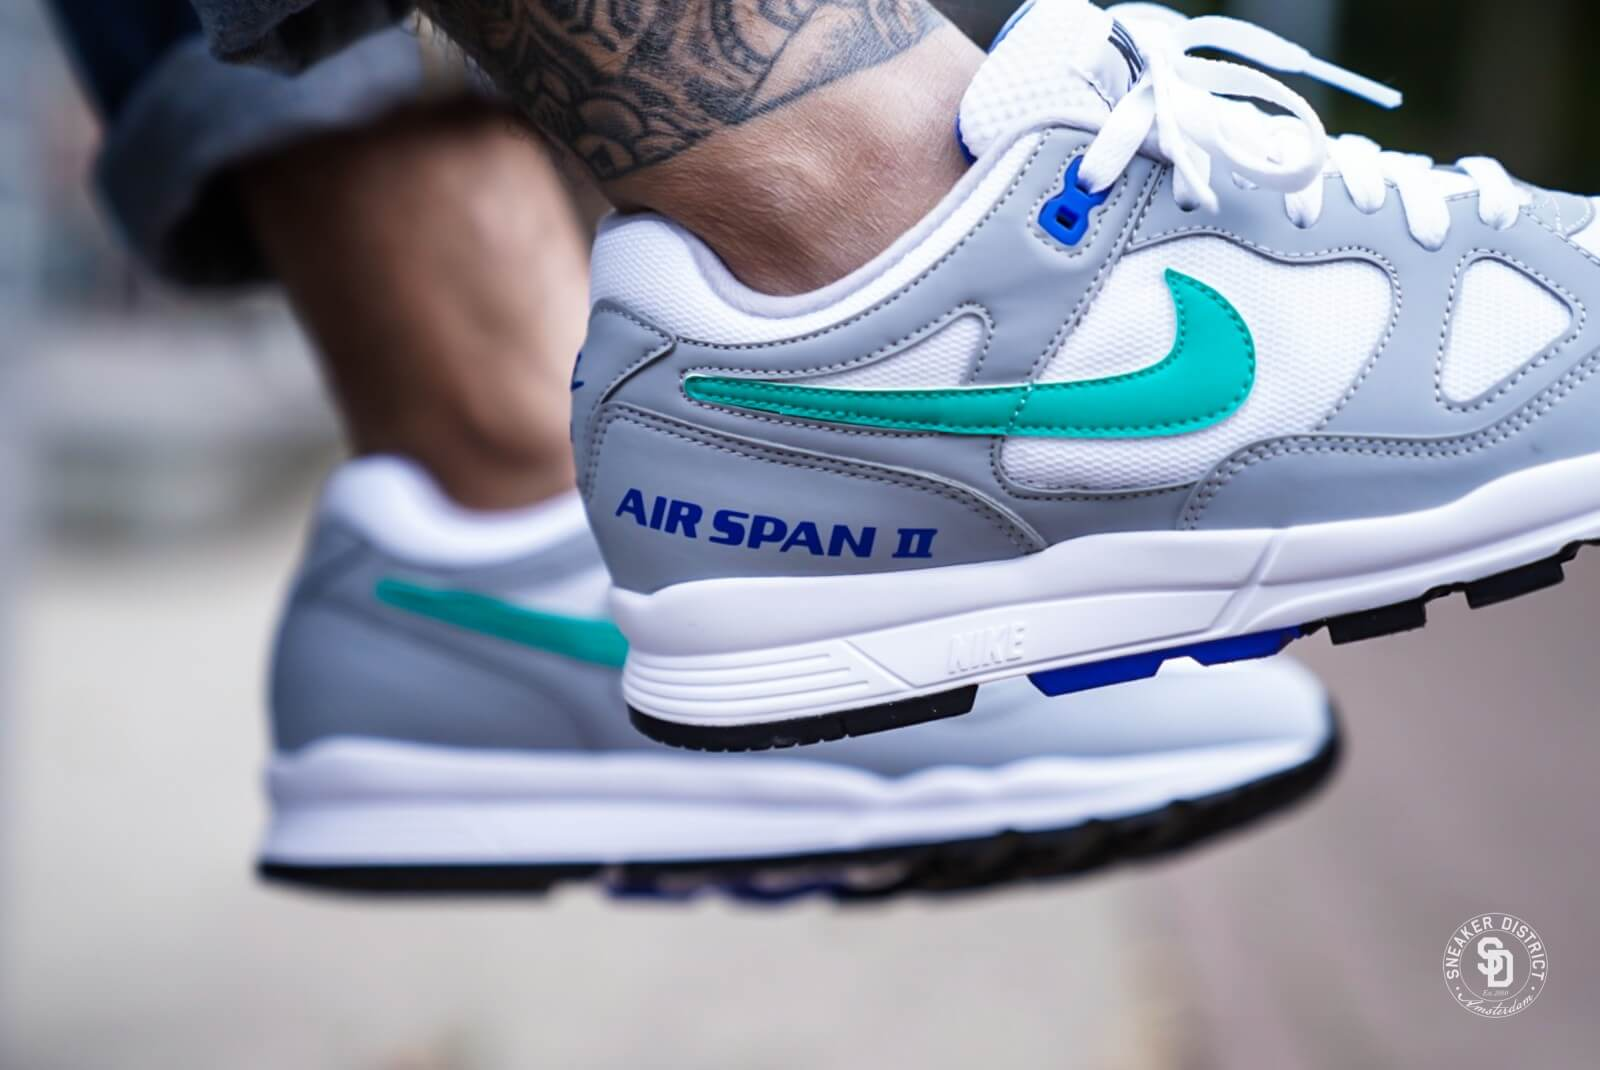 4b5cbcfa2f sweden nike wmns air max 1 multicolore baskets chez sarenza 329926 d98fd  16335; low cost nike air span ii wolf grey clear emerald white 7afb6 b1d17